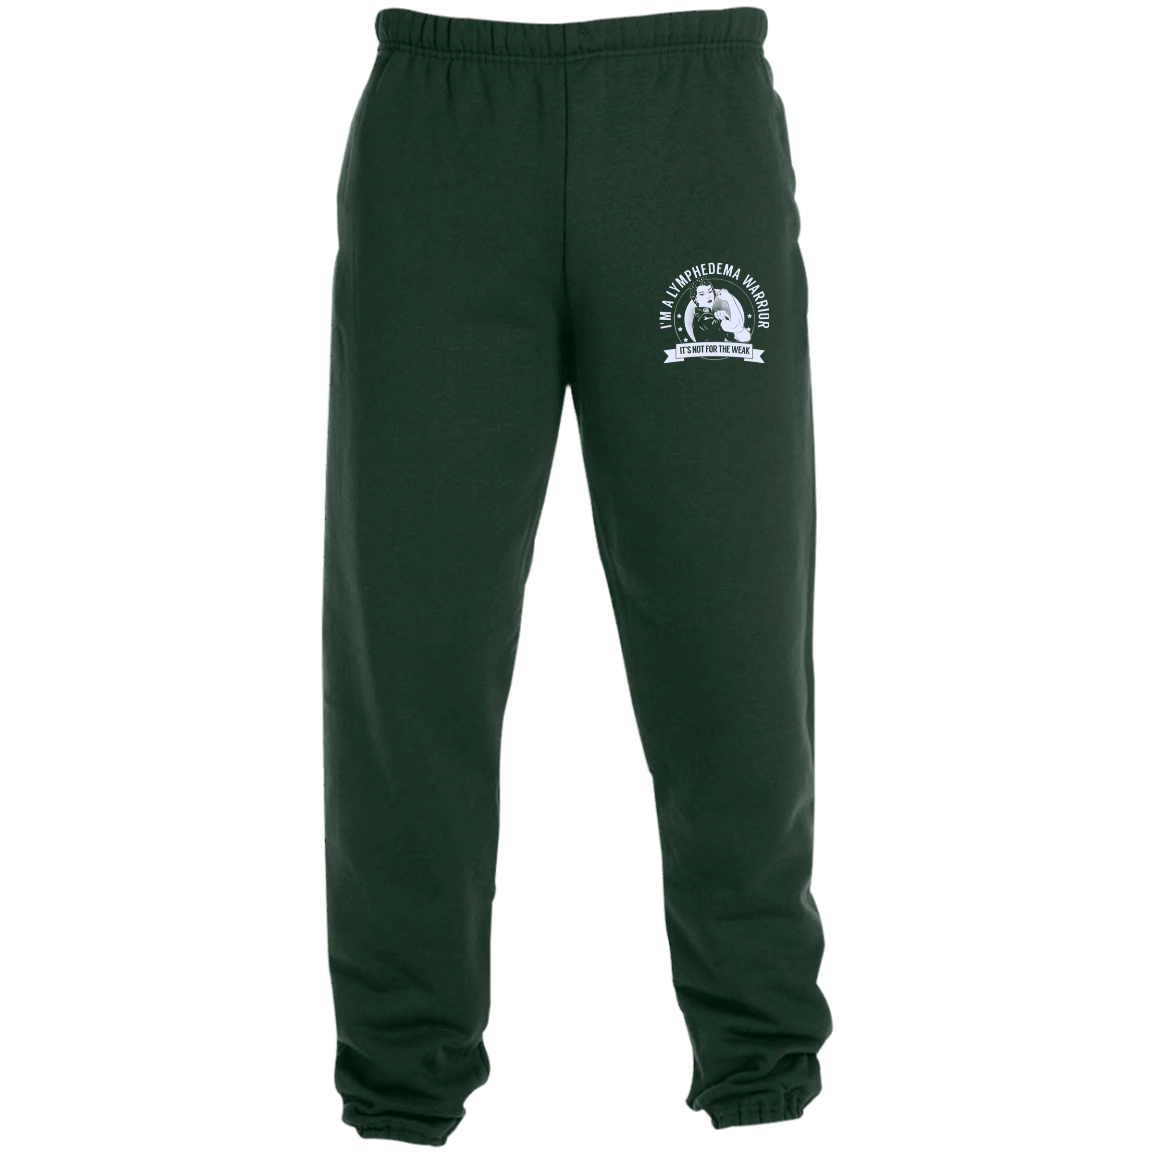 Sweatpants 3png - Lymphedema Warrior NFTW Sweatpants with Pockets - The Unchargeables